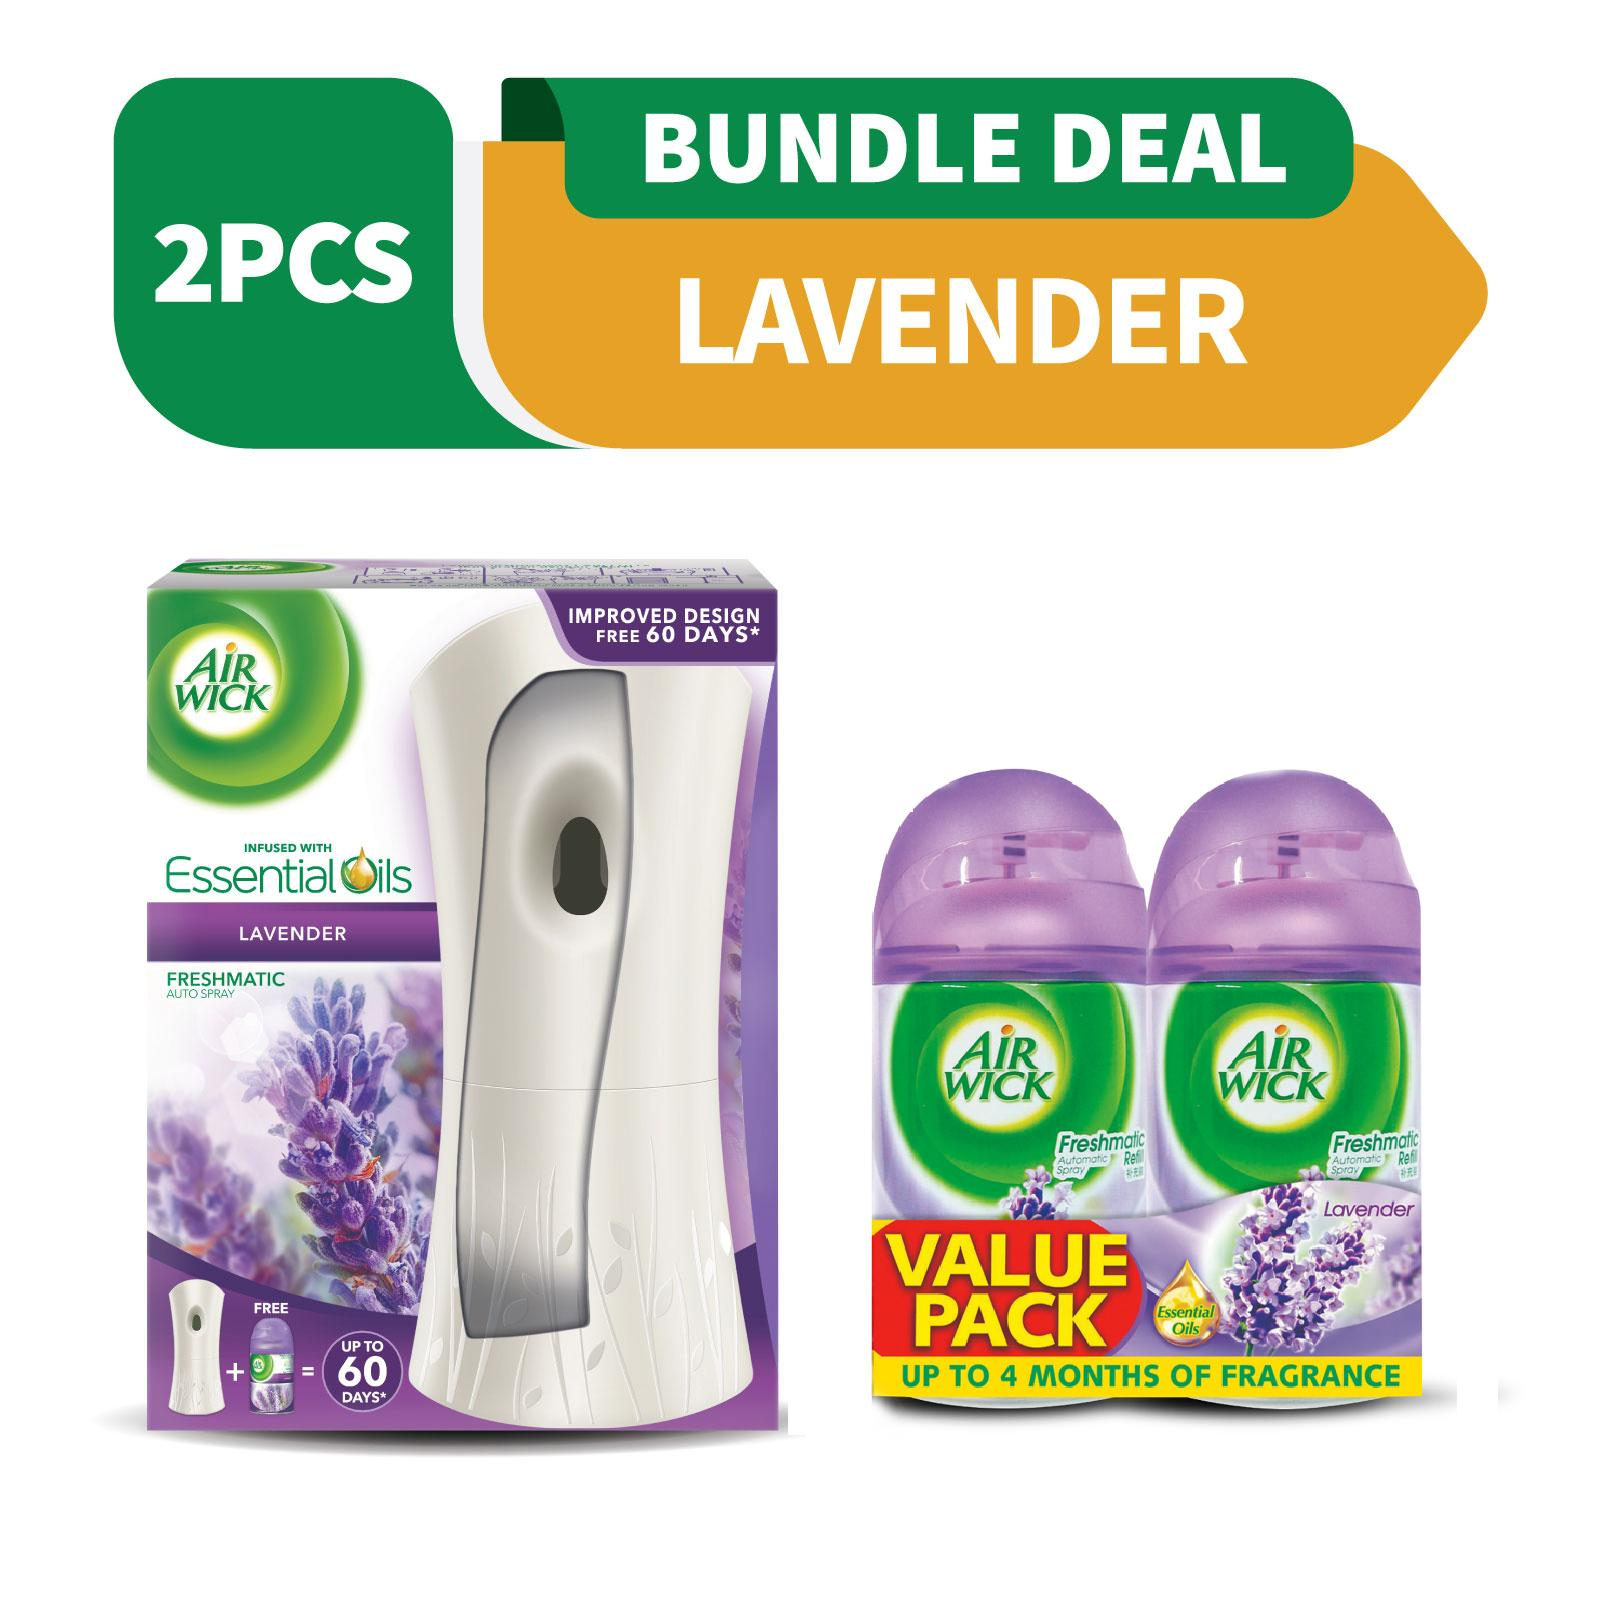 Air Wick Lavender Freshmatic Automatic Spray Starter Kit  + Air Wick Lavender Freshmatic Automatic Spray Refill Twin Pack 250ML x 2